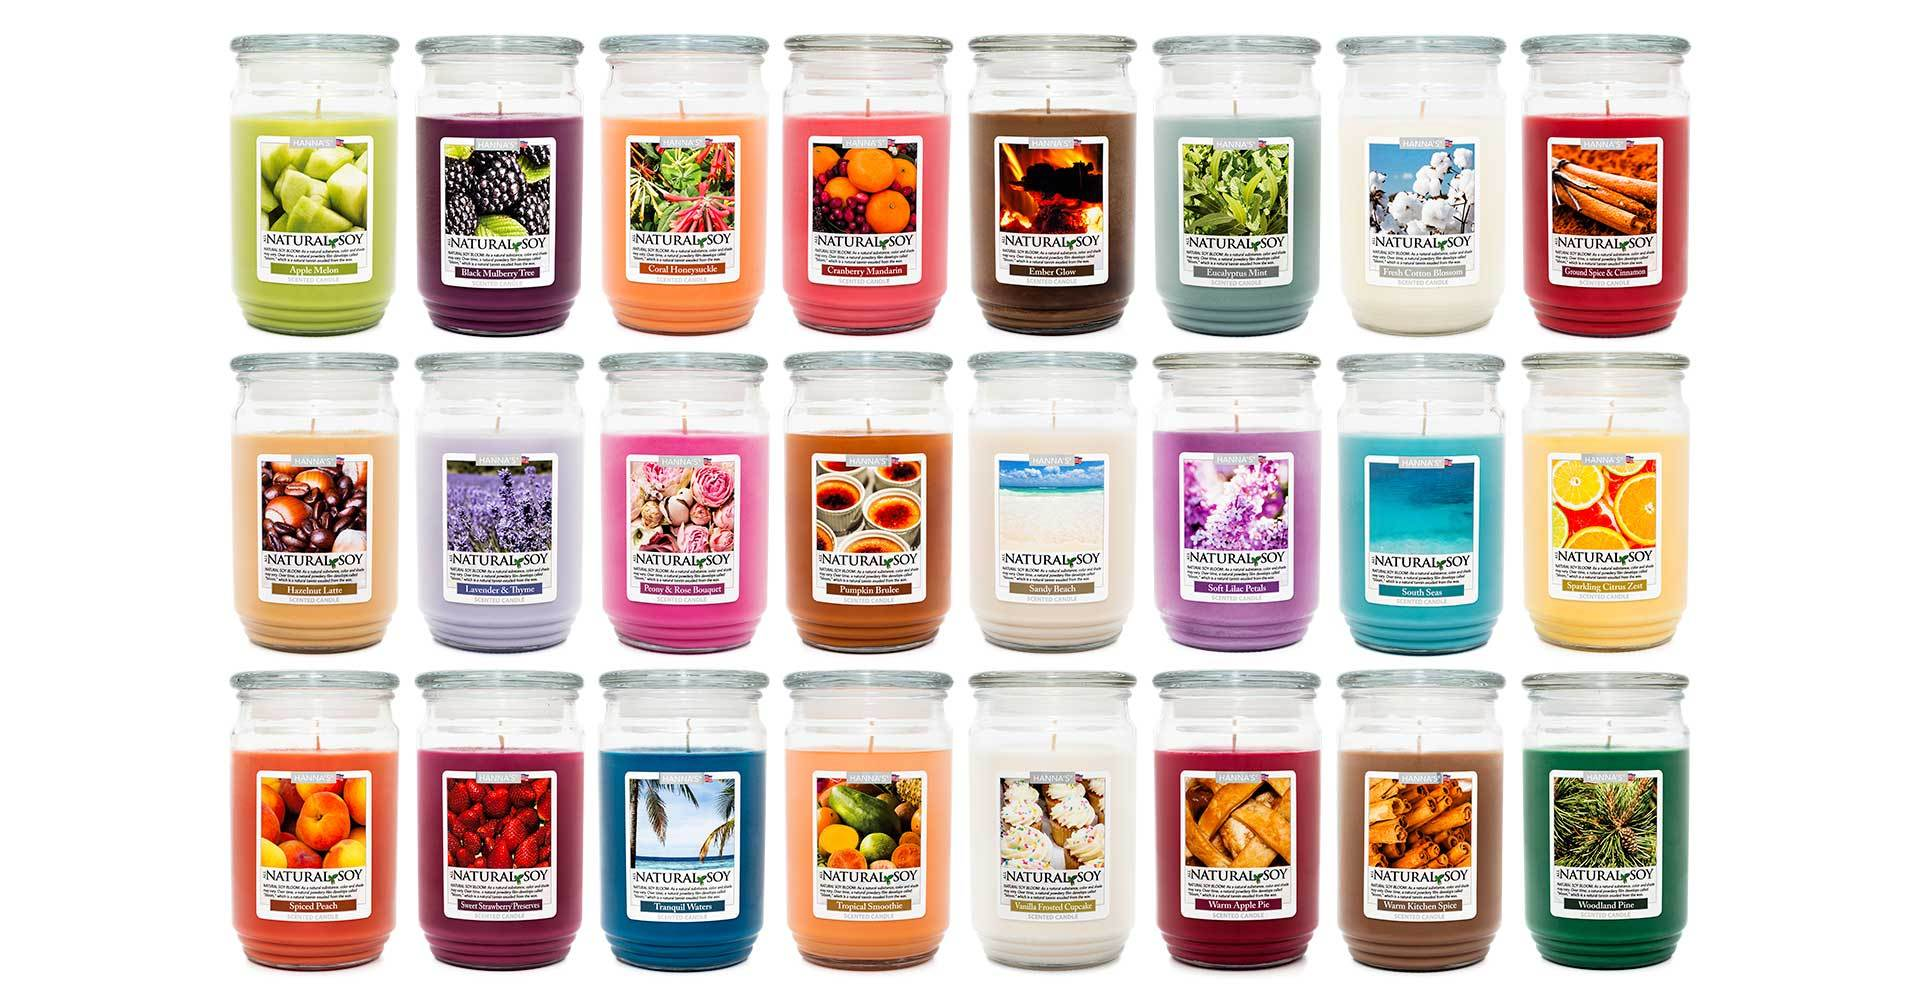 Natural Soy Fresh Cotton Blossom Scented Soy Candle 100% Soy Candles Candlemart.com $ 12.99